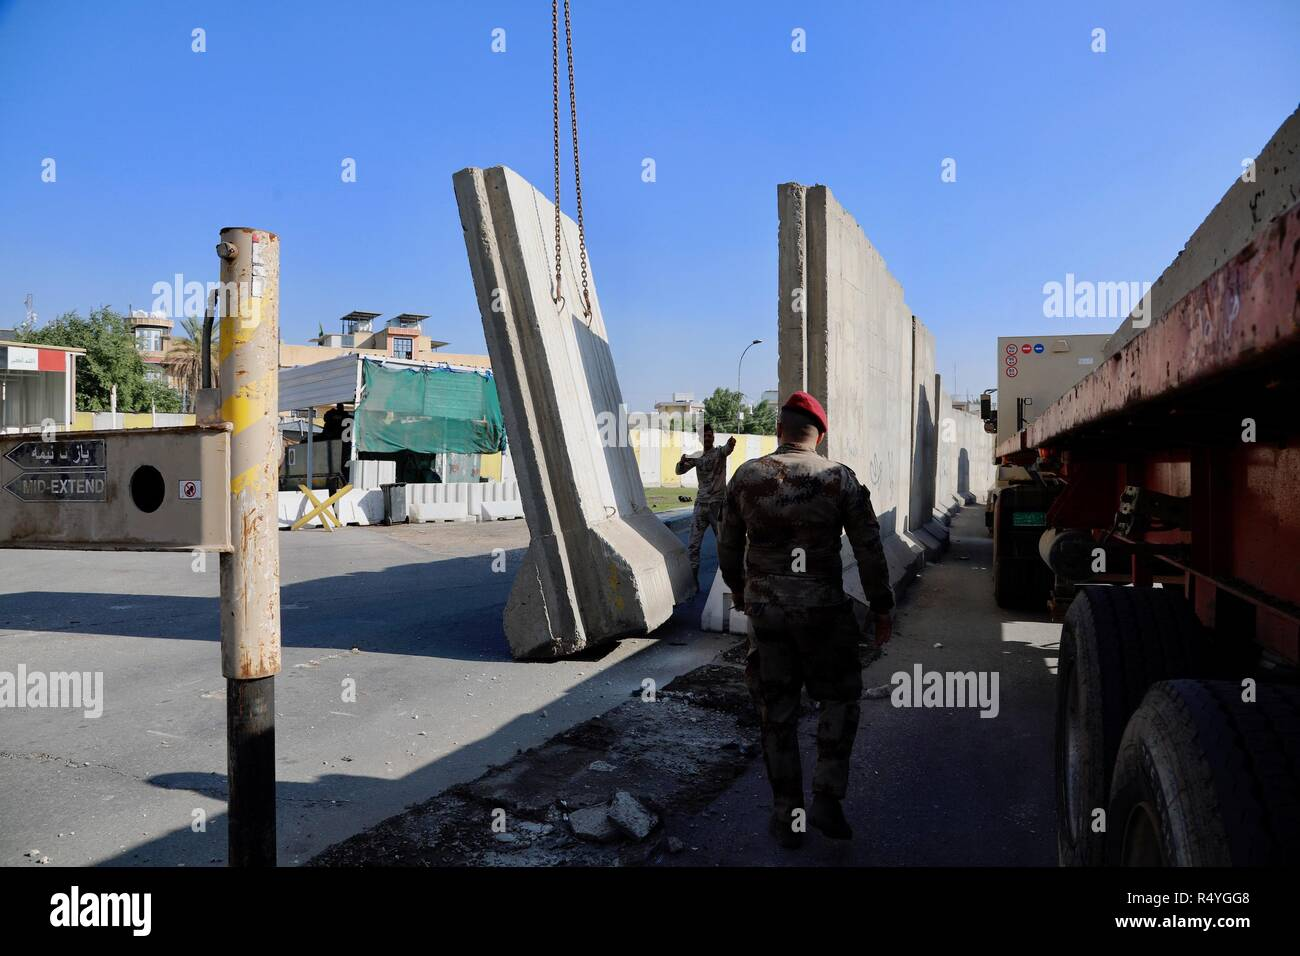 Baghdad, Iraq  28th Nov, 2018  Security members remove